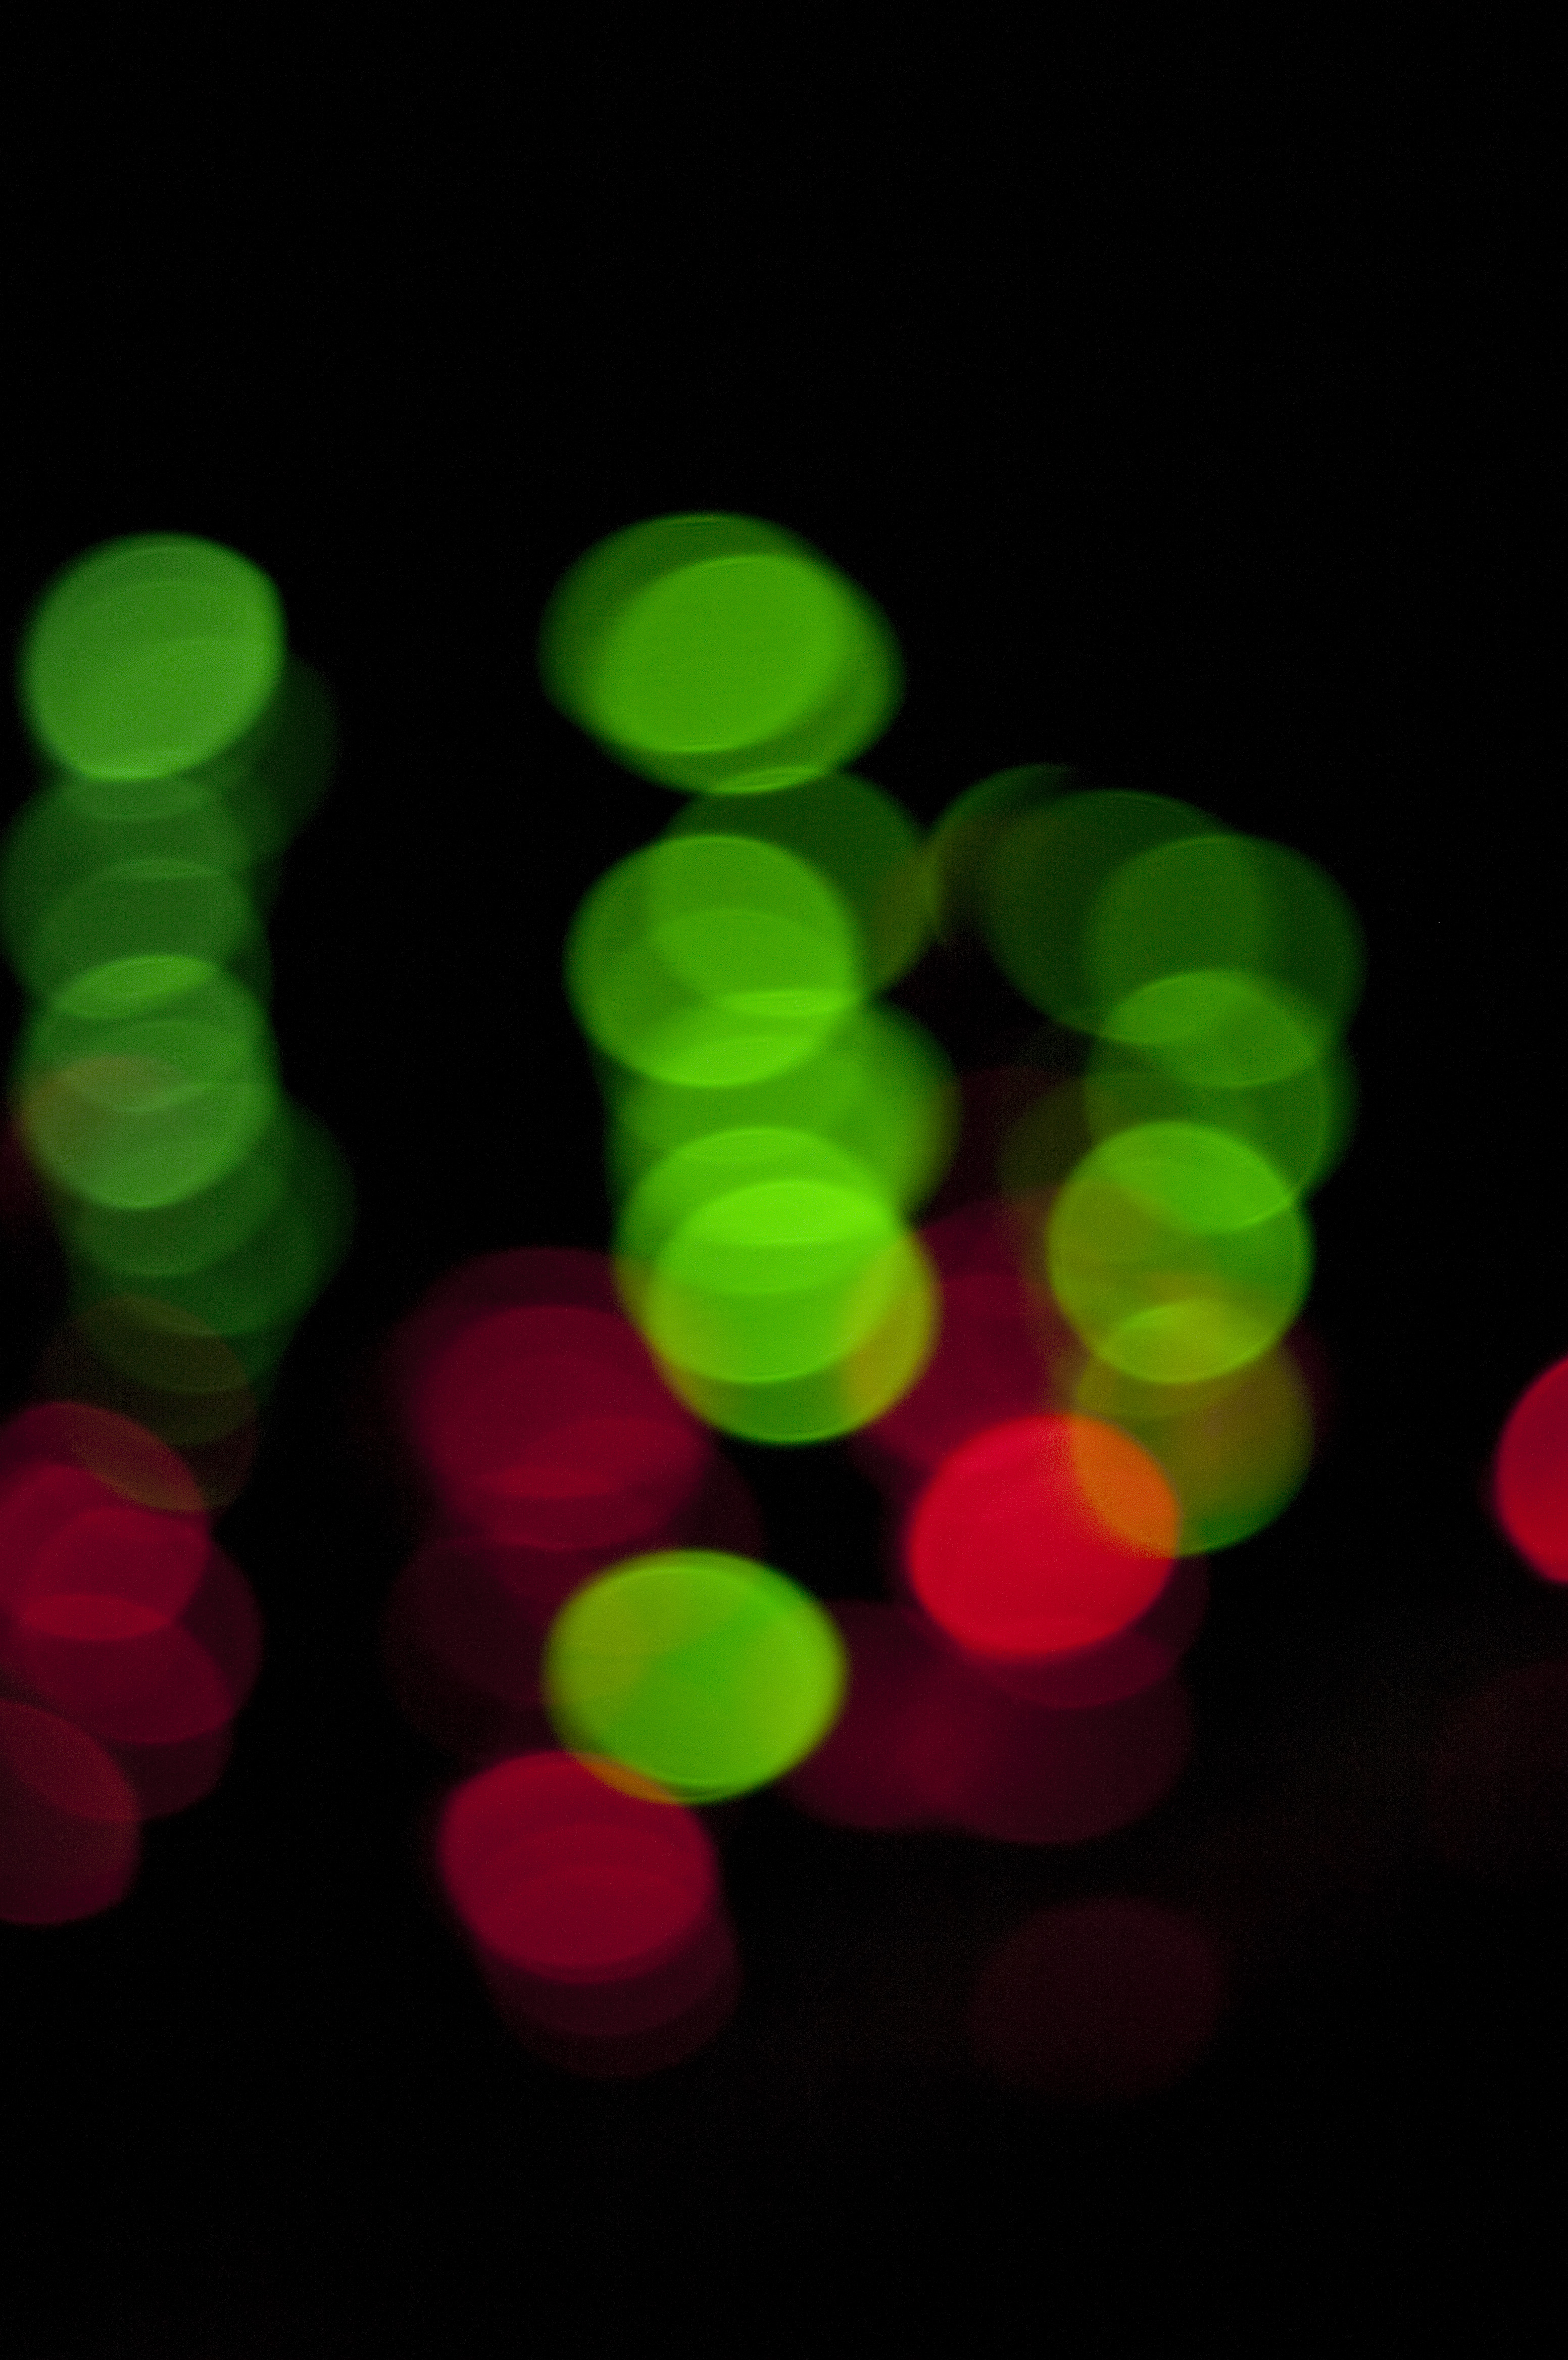 Free Stock Photo 2303-green and red lights | freeimageslive